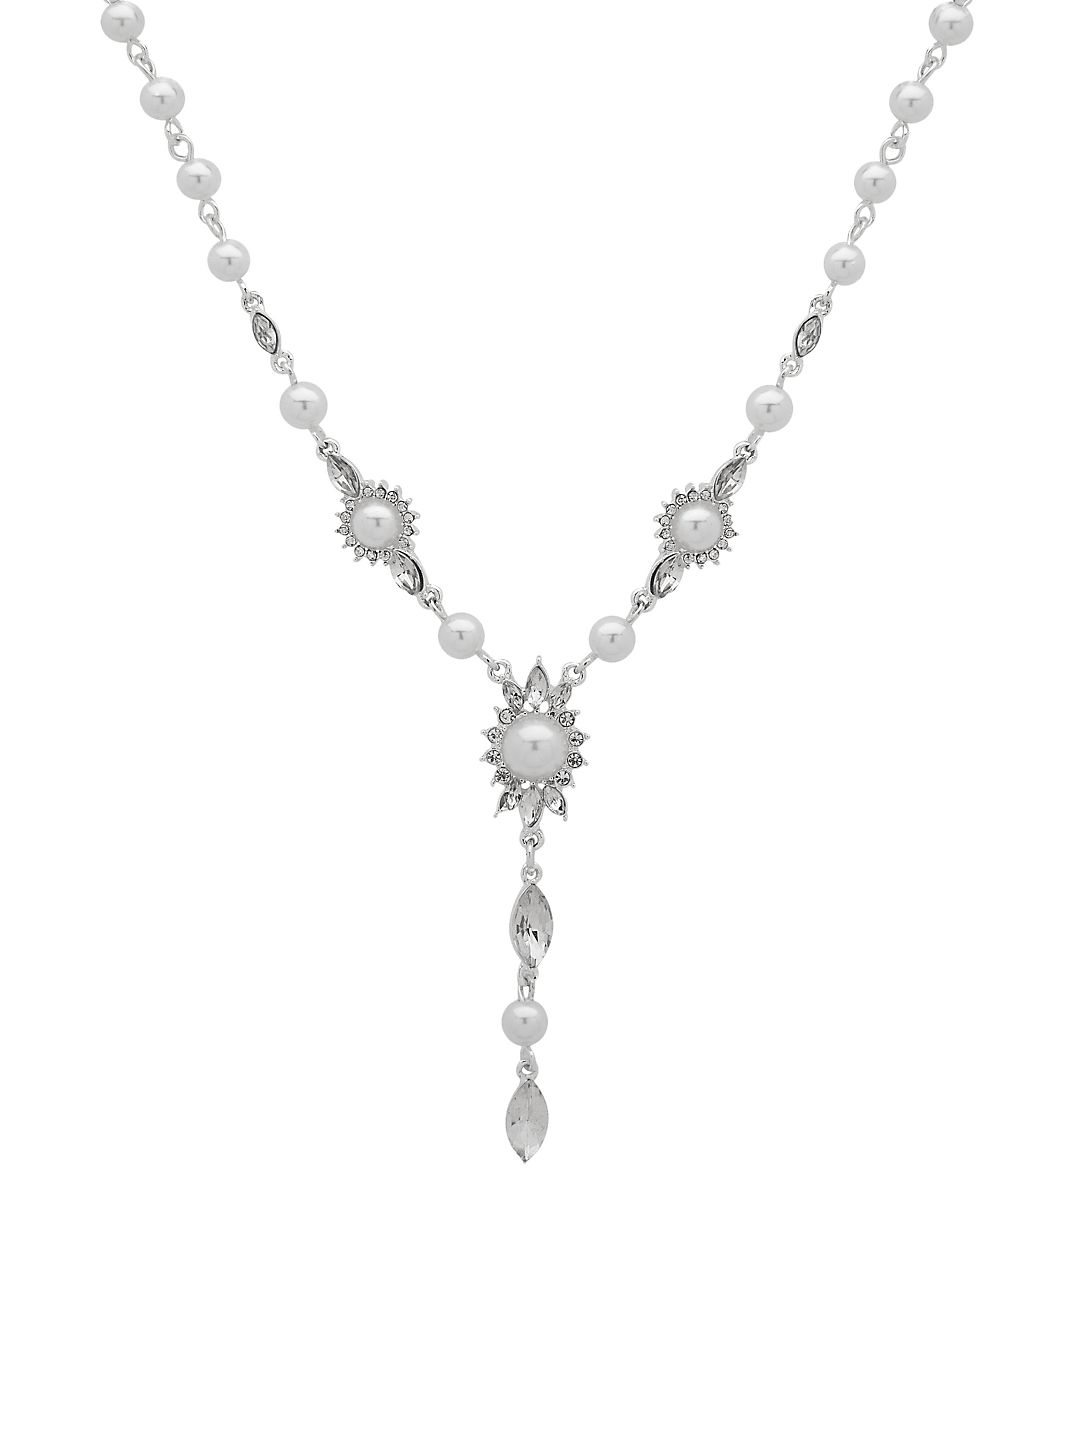 Silvertone and Faux Pearl Y-Necklace